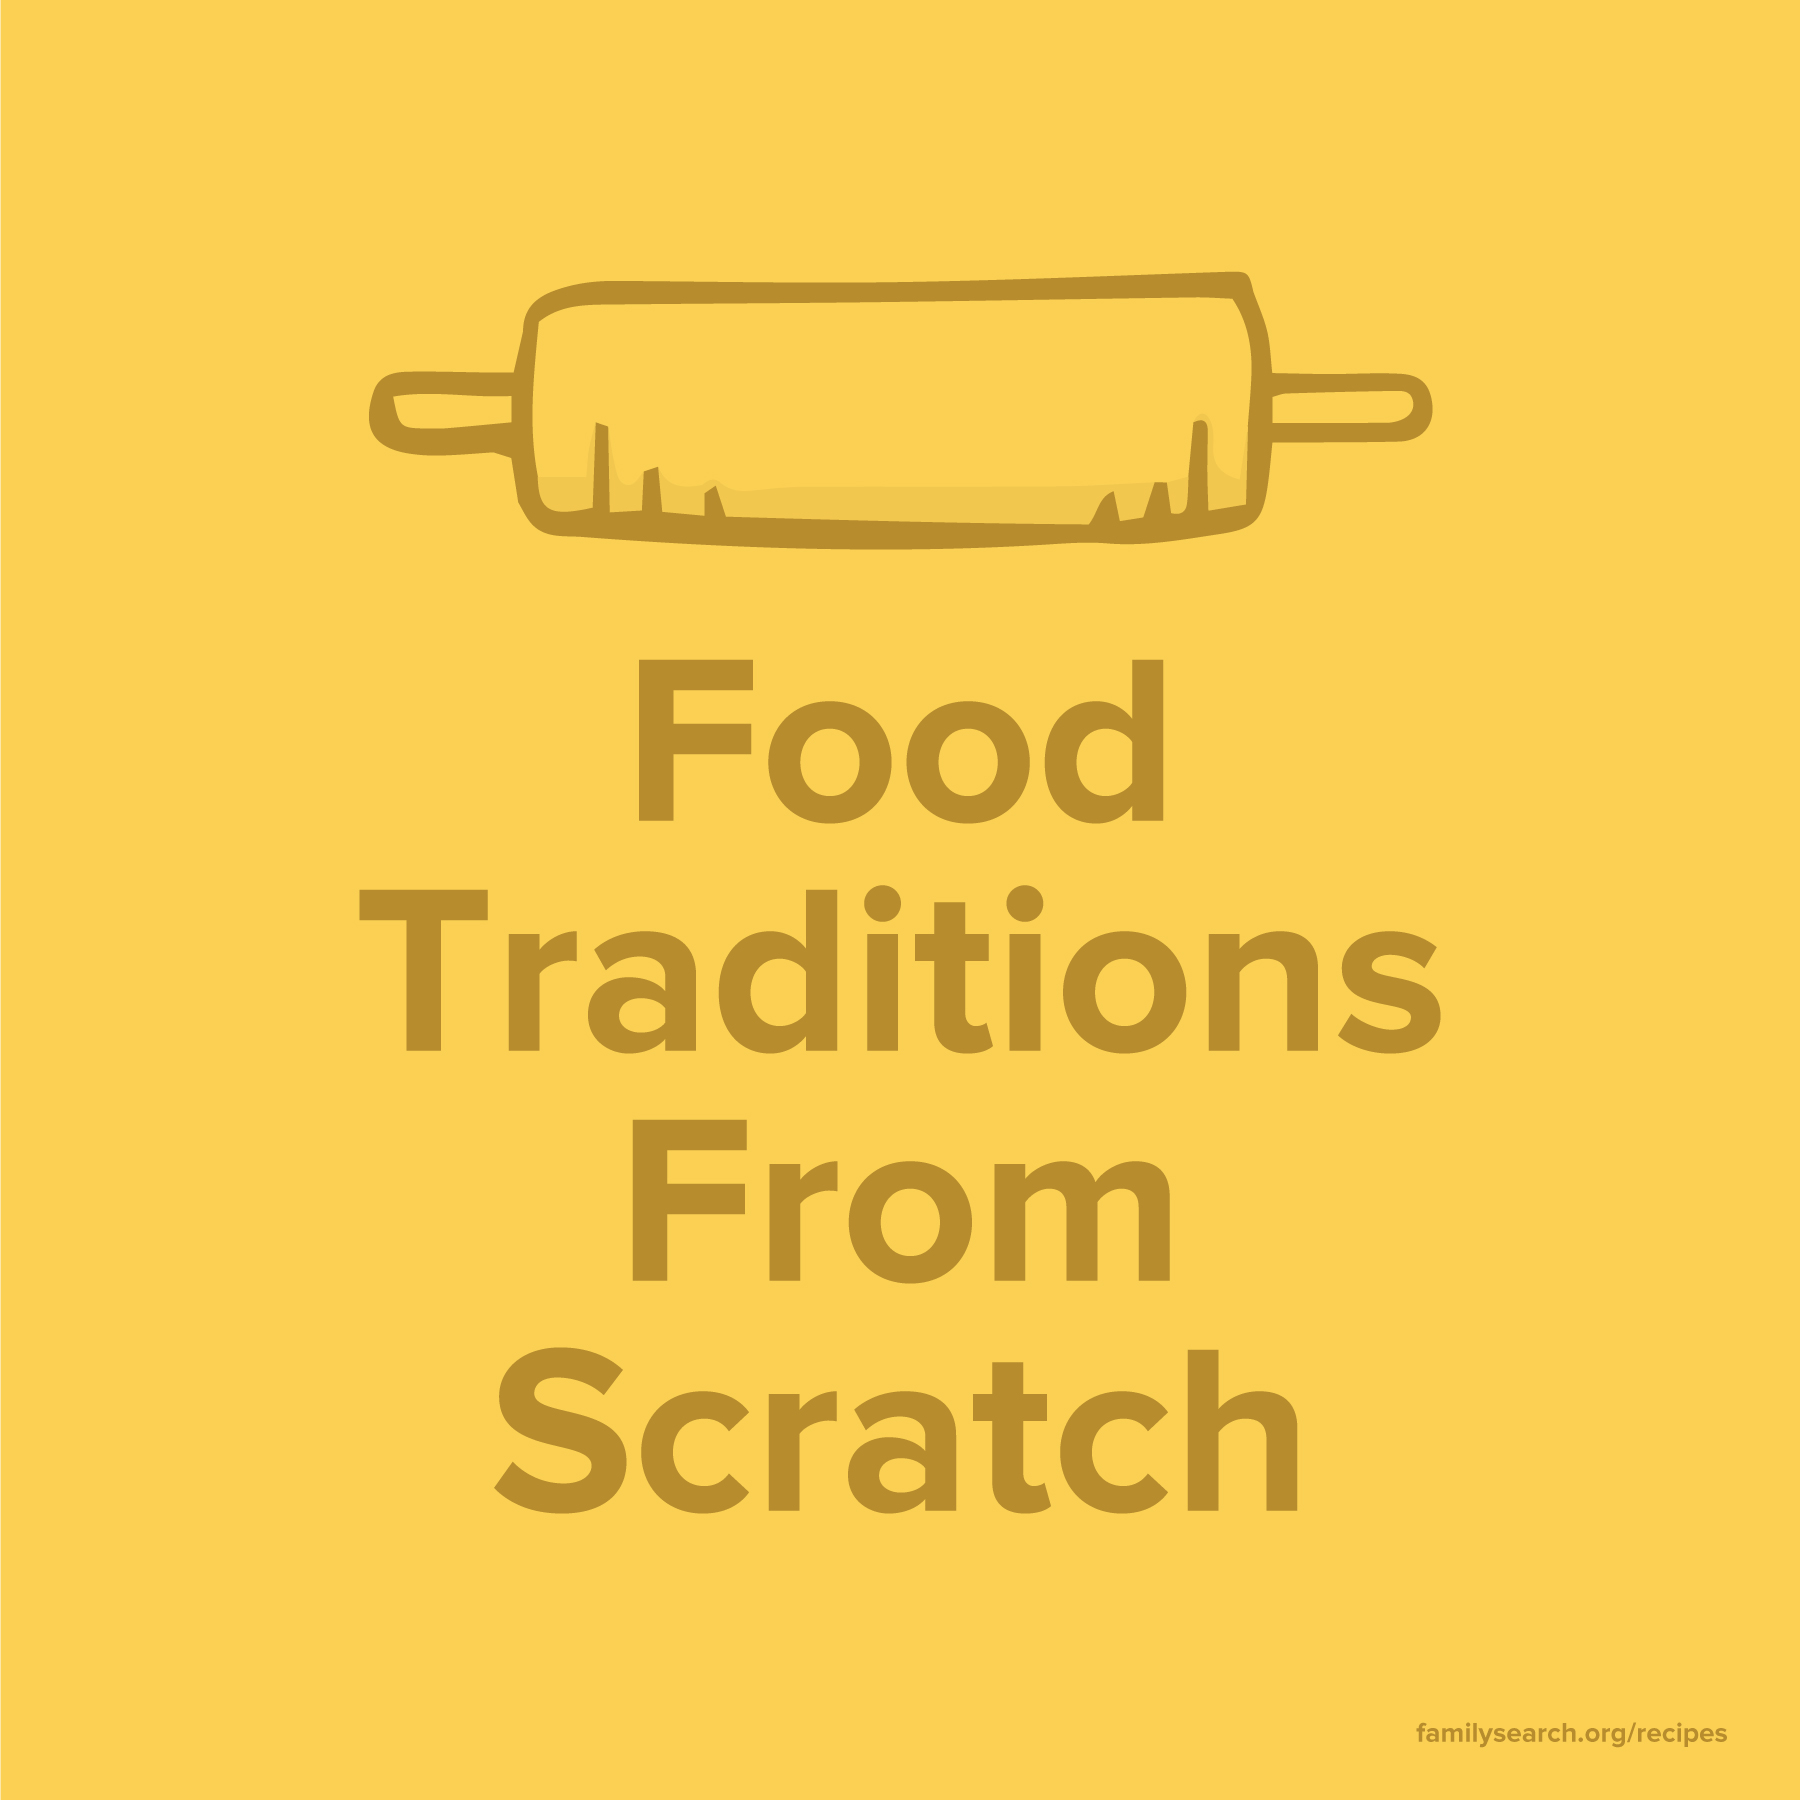 Food traditions from scratch graphic.